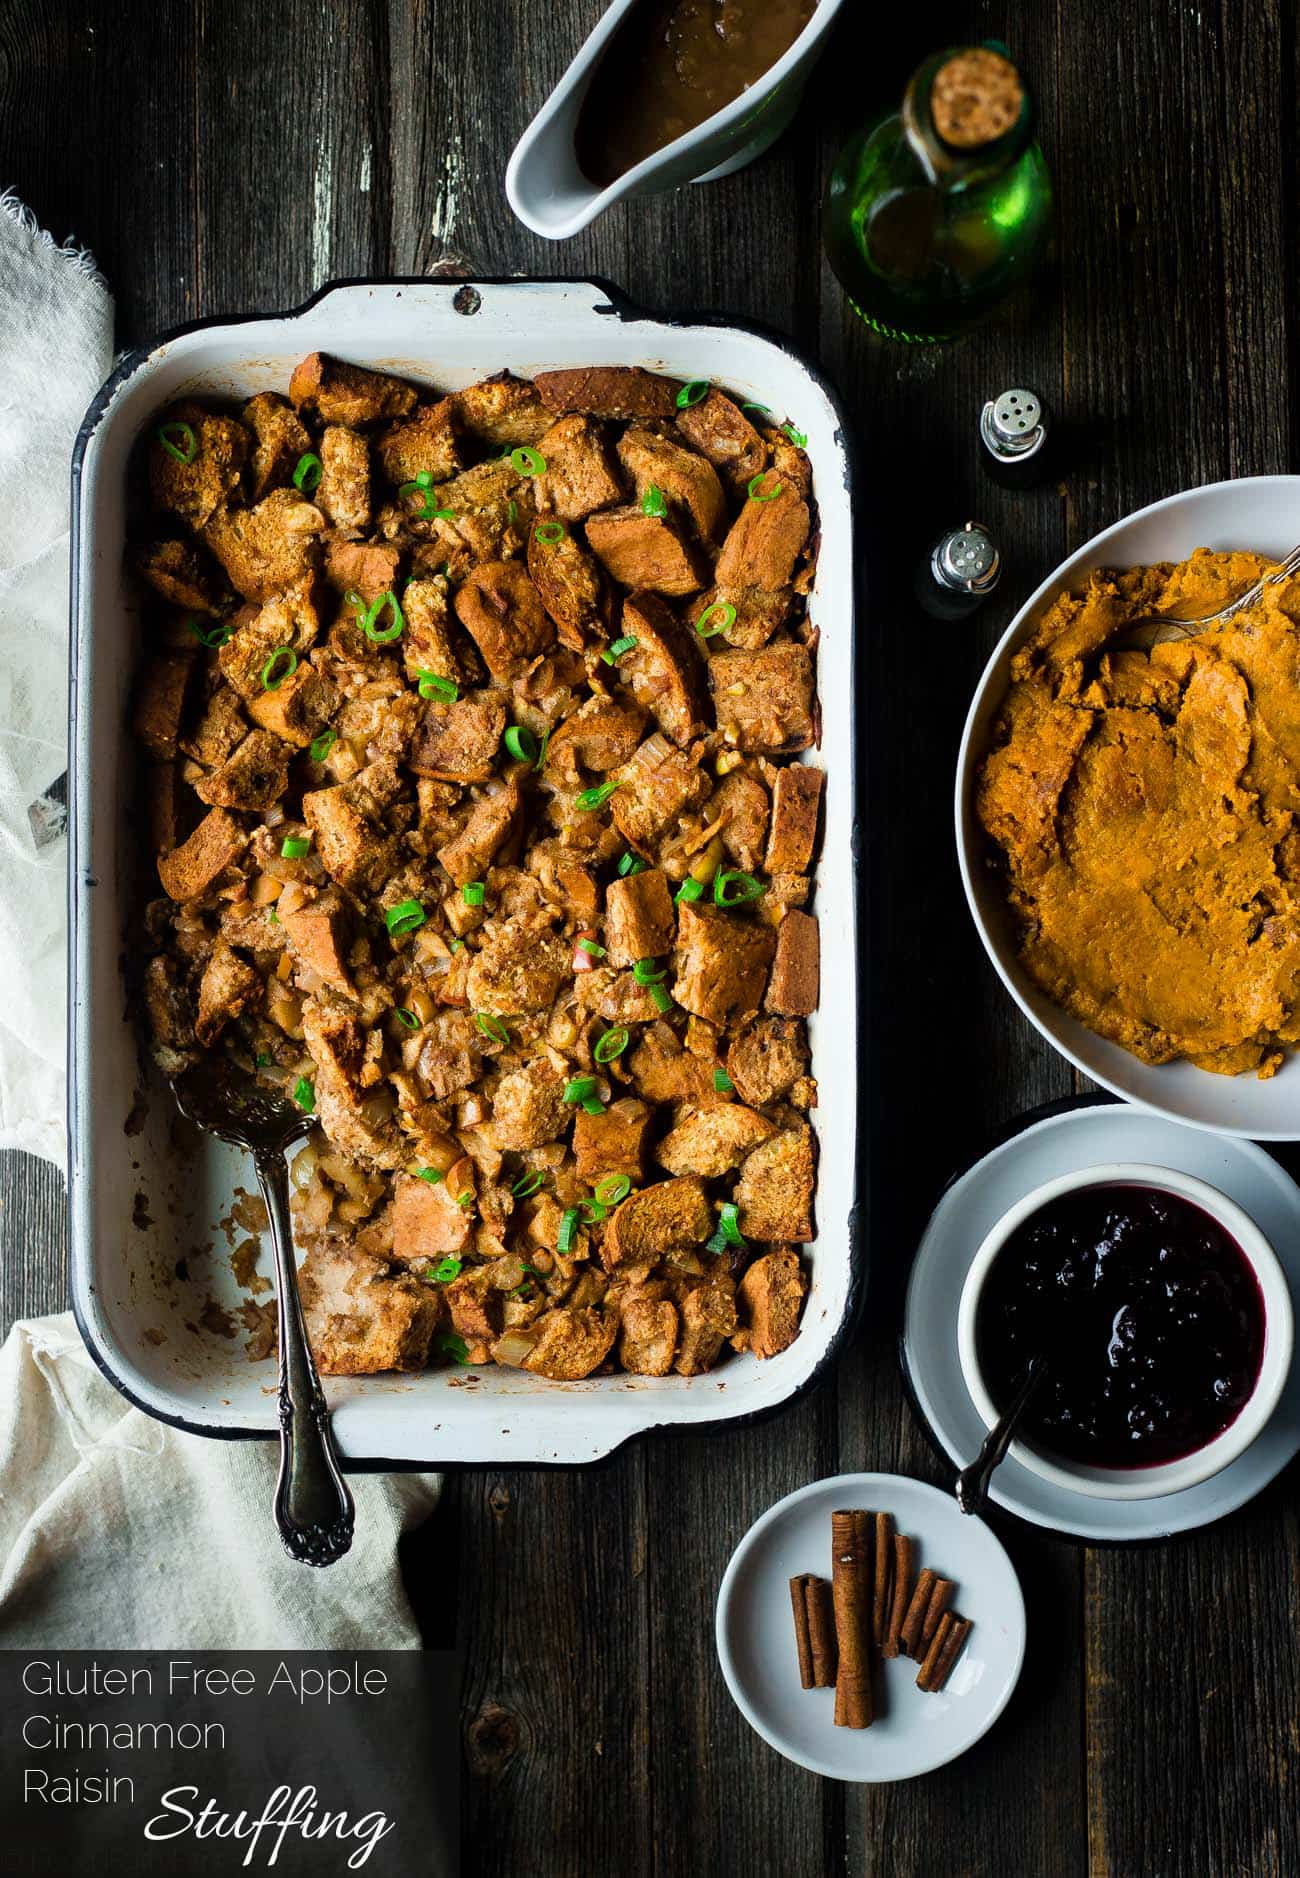 Gluten Free Apple Raisin Stuffing - This easy, gluten free stuffing is made from a mixture of bread and cinnamon raisin bagels! It's the perfect simple, healthy Thanksgiving side dish that everyone will love! | Foodfaithfitness.com | @FoodFaithFit